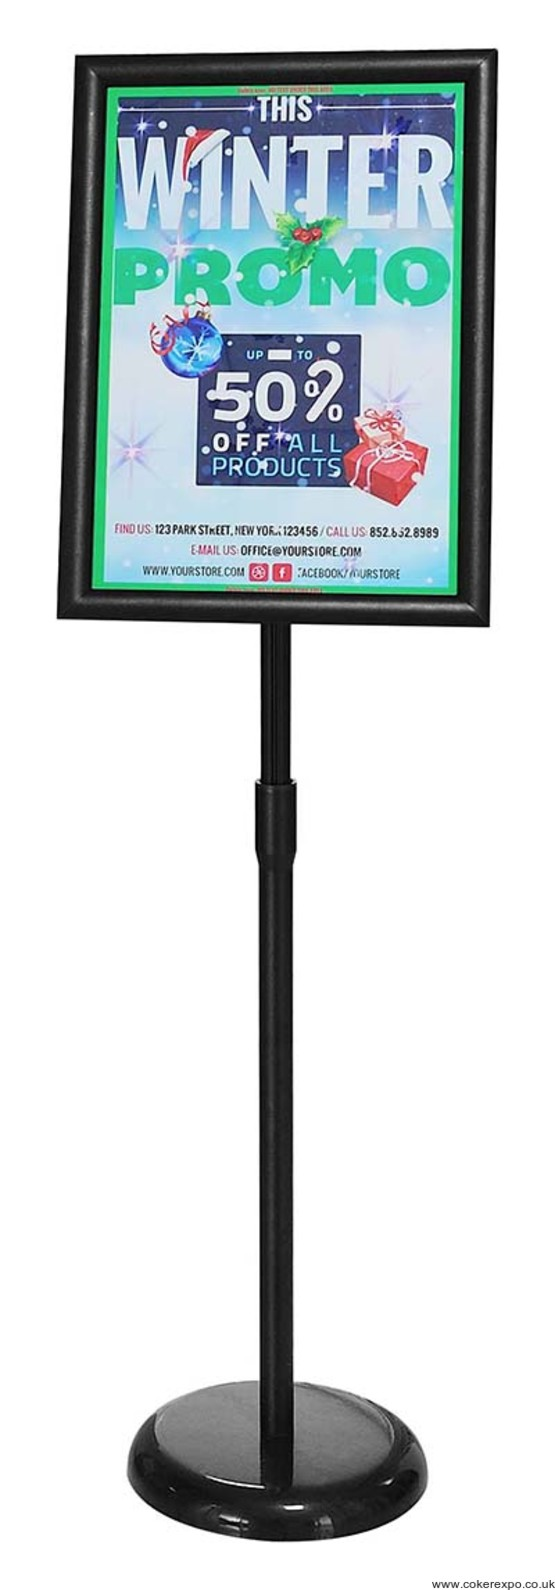 a3 Information sign holder in black